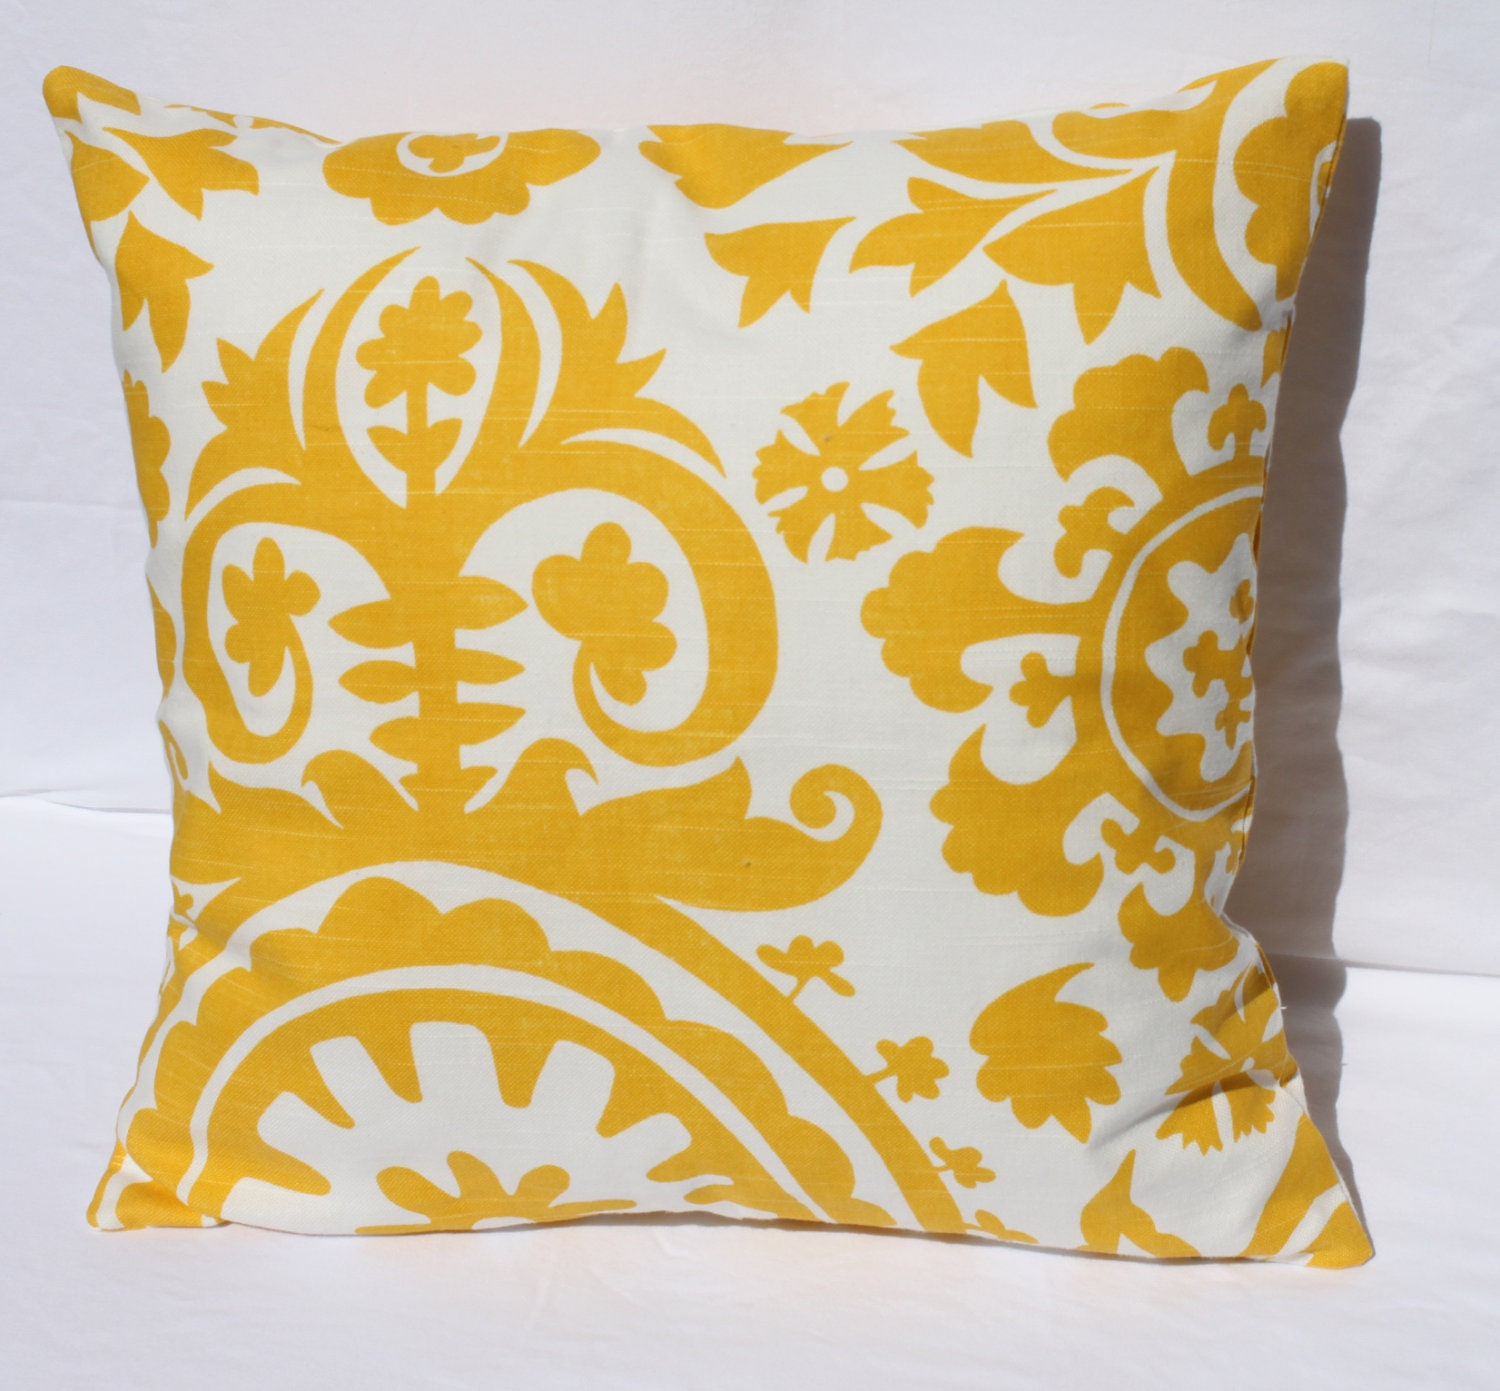 YELLOW PILLOW 16 x 16 Yellow Decorative Pillow by ThatsMyPillow